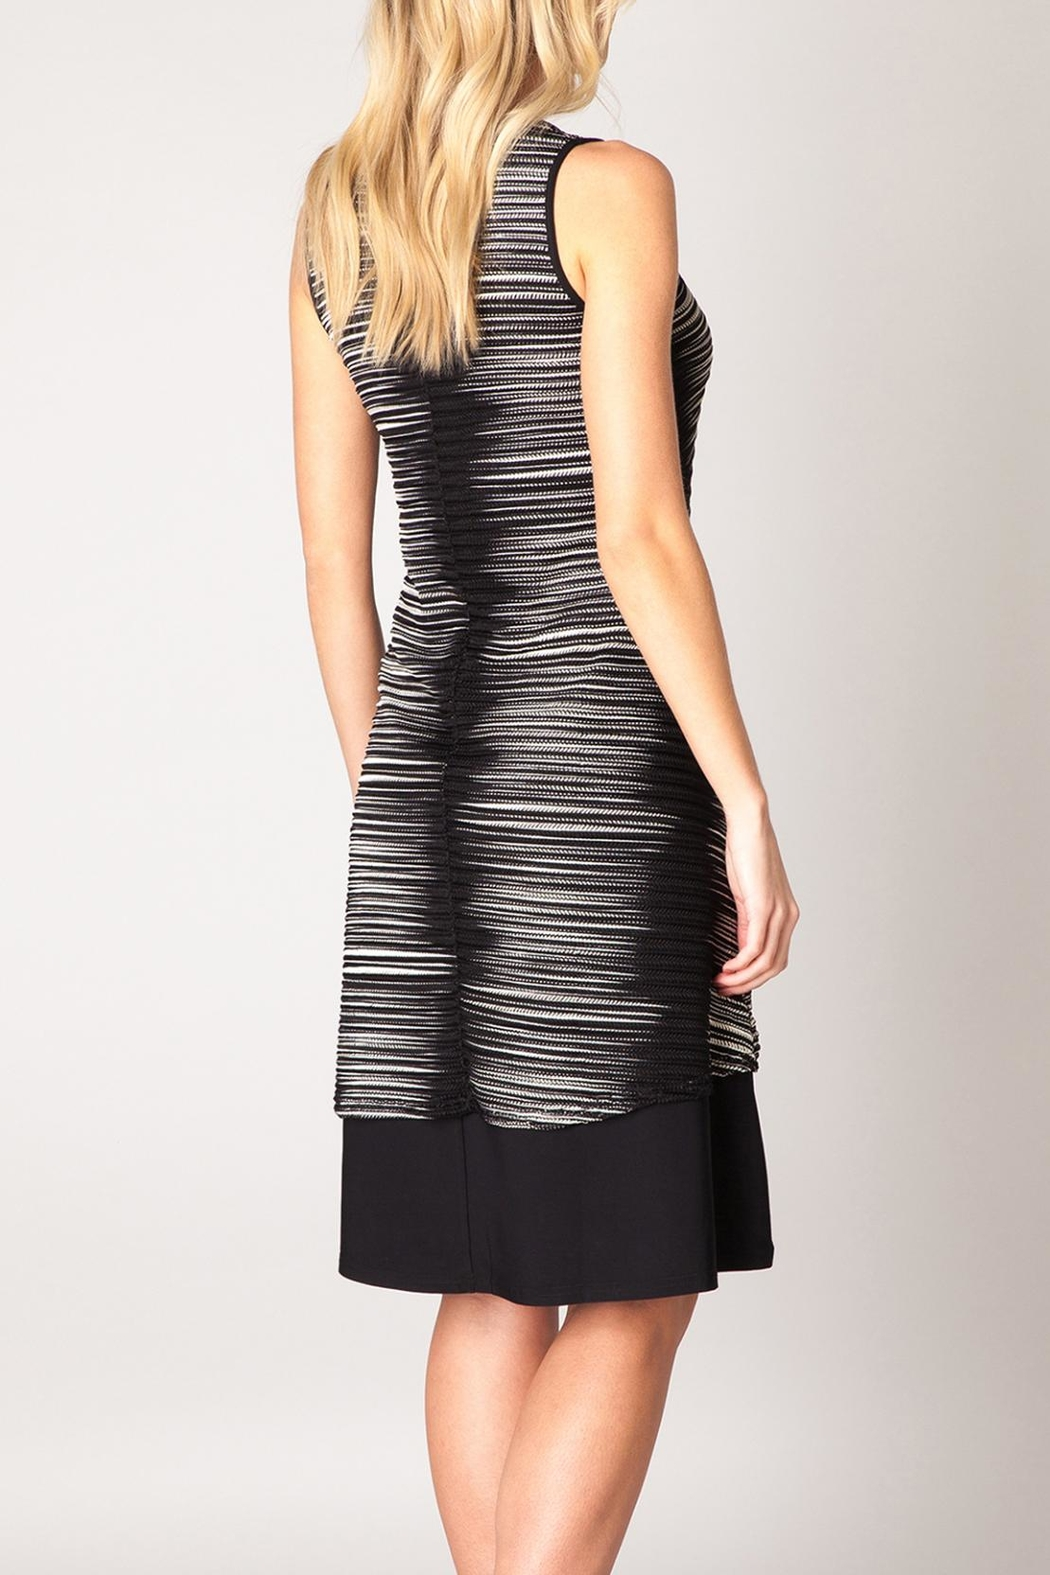 Colletta Zizag Sleeveless Dress - Front Full Image